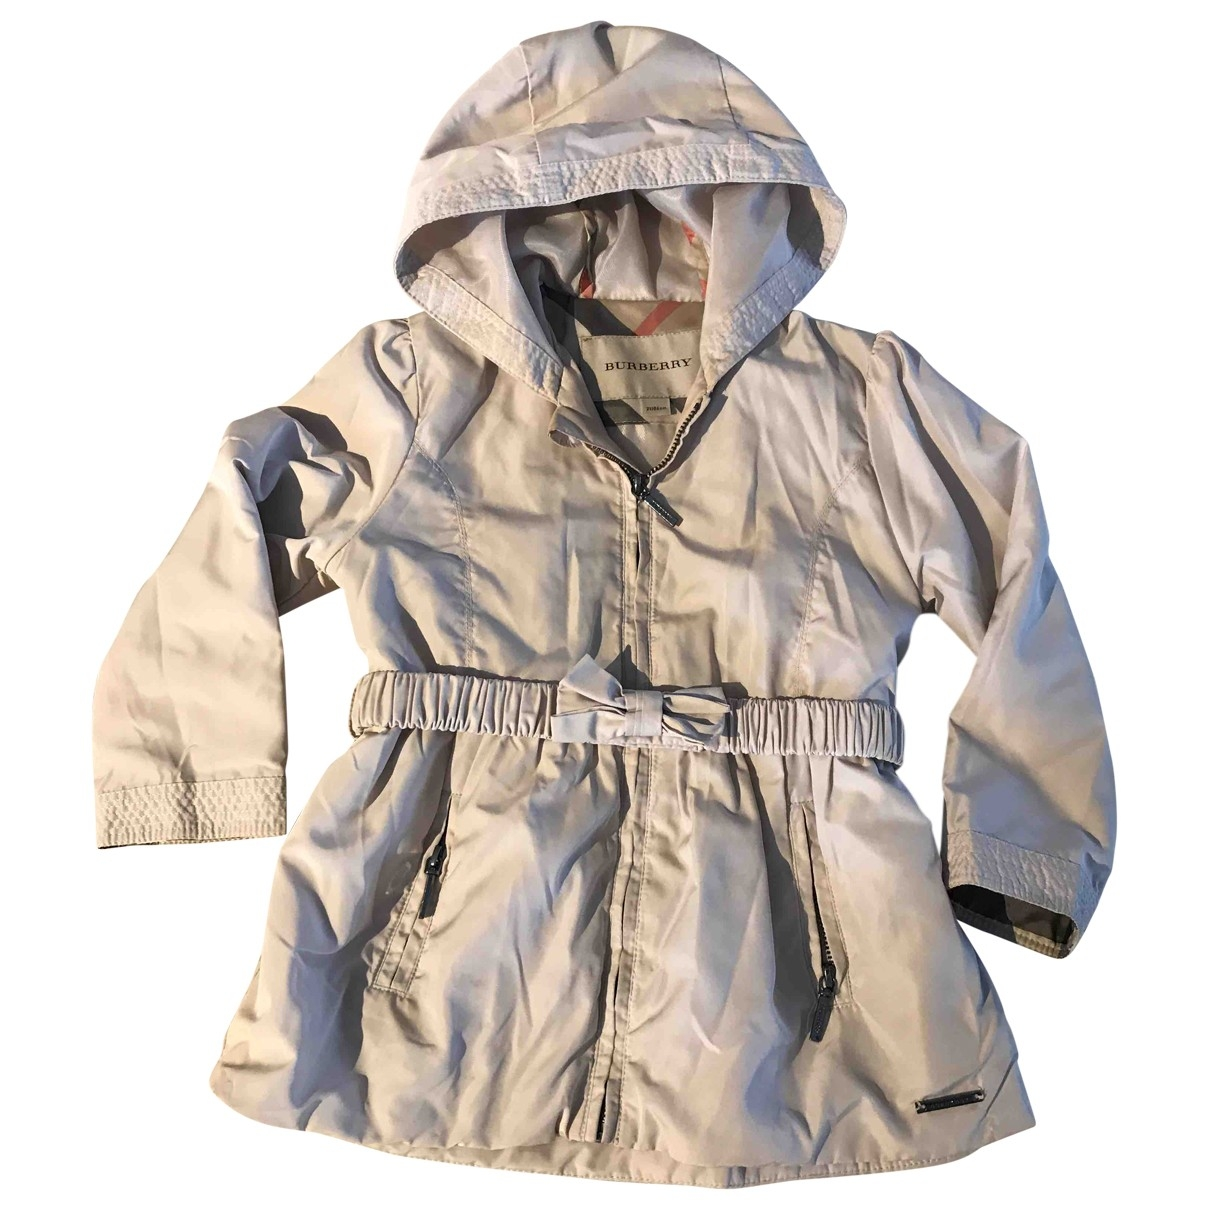 Burberry \N Beige Cotton jacket & coat for Kids 2 years - up to 86cm FR